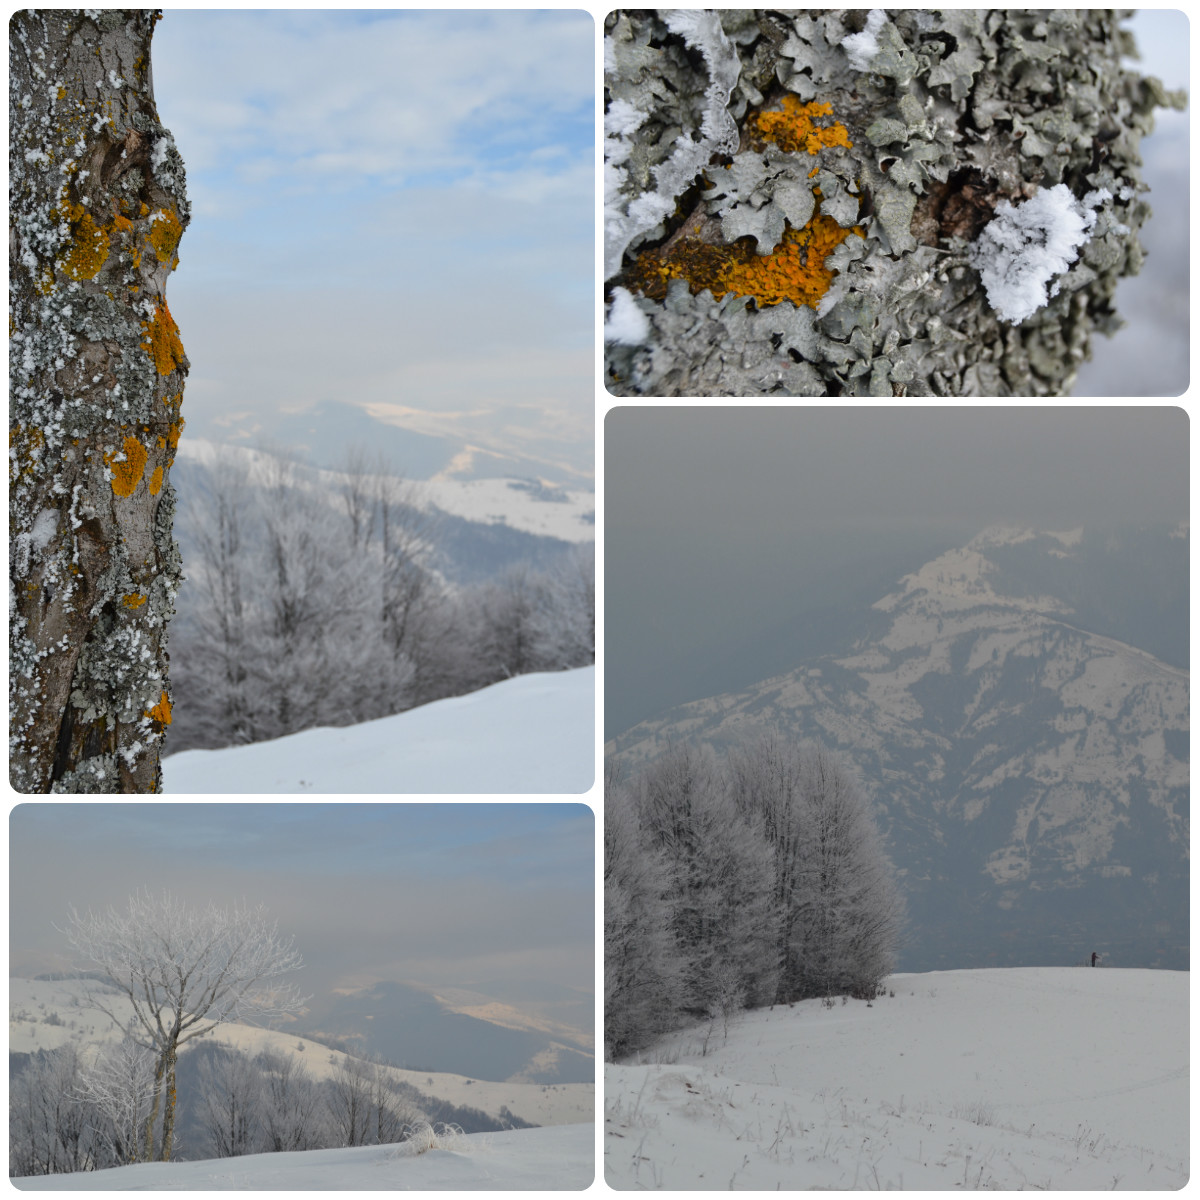 winter nature in snow, landscapes in carpathians